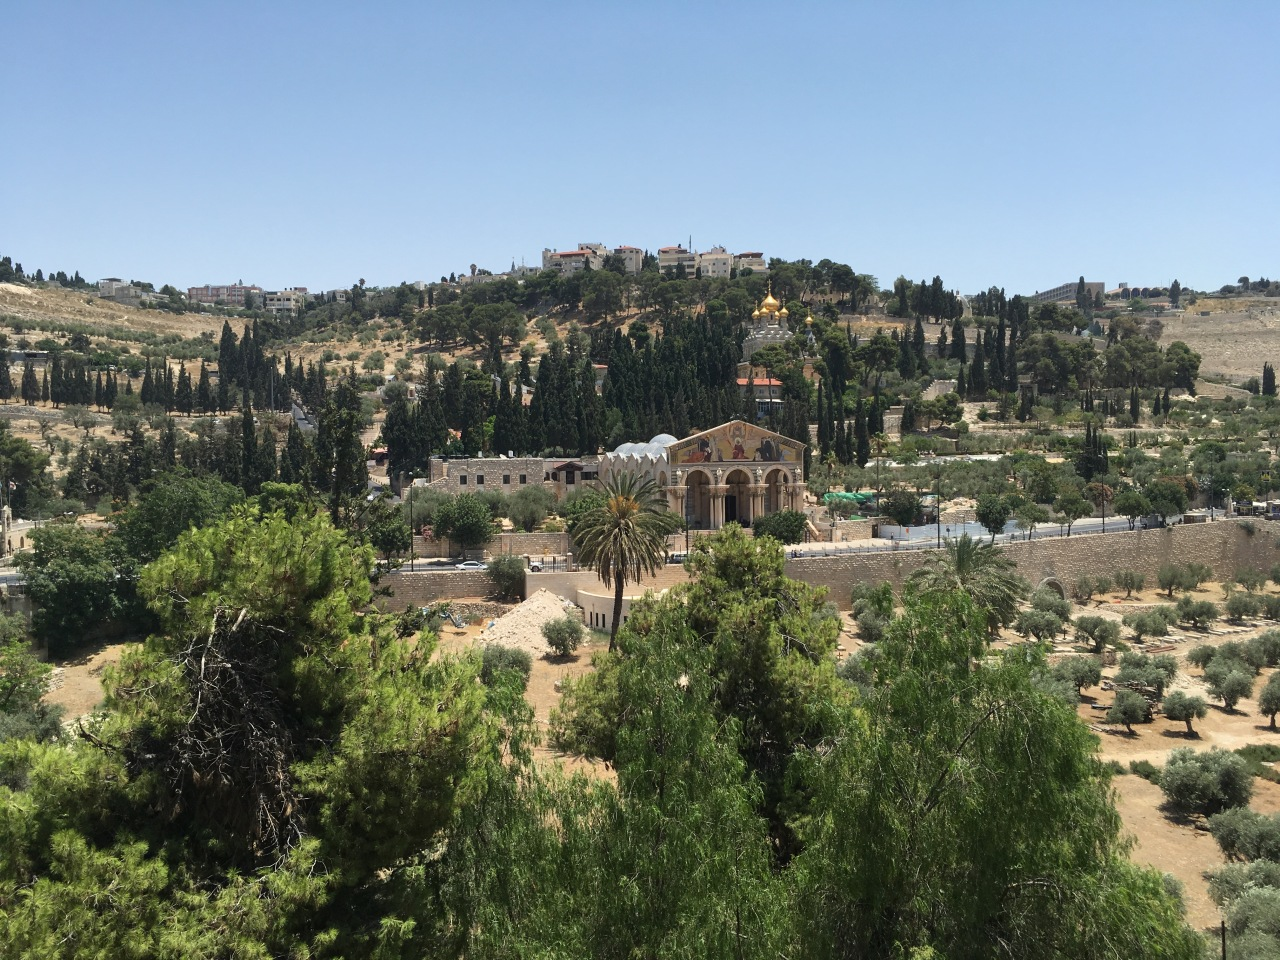 No martinis for Mount of Olives ascent